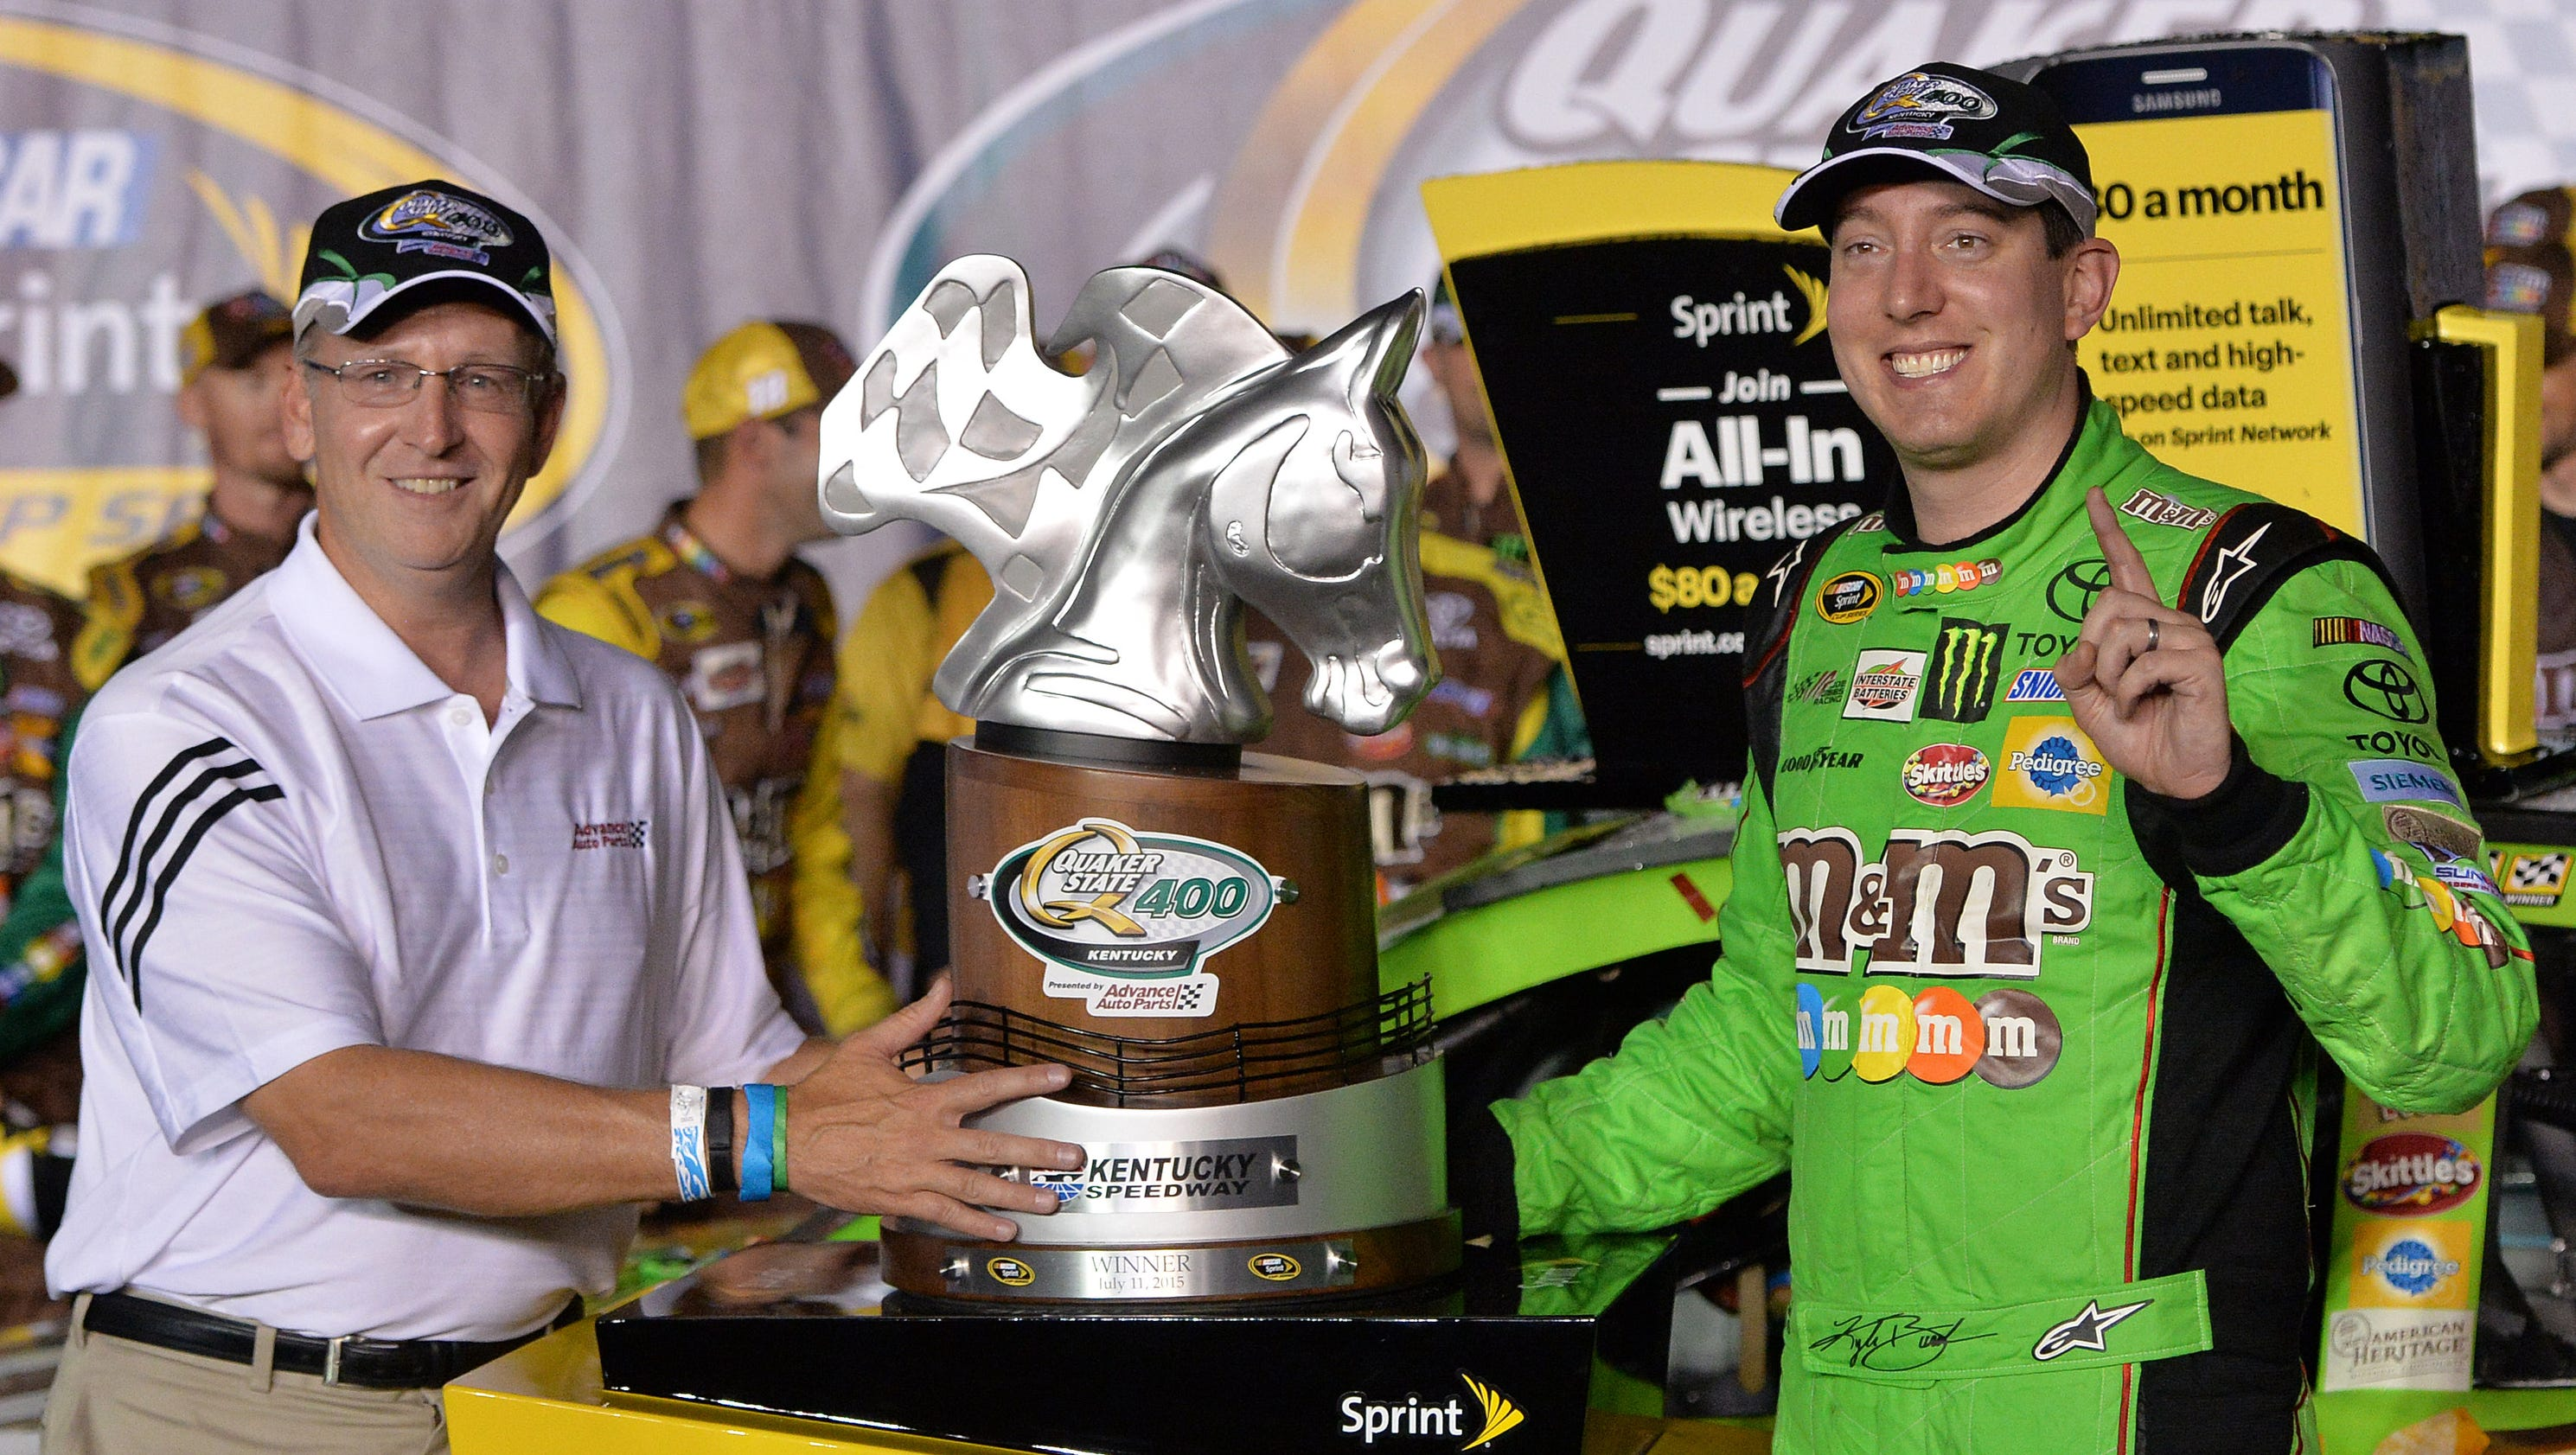 Kyle busch wins sprint cup 400 mile race at kentucky for Motor city pawn shop on east 8 mile